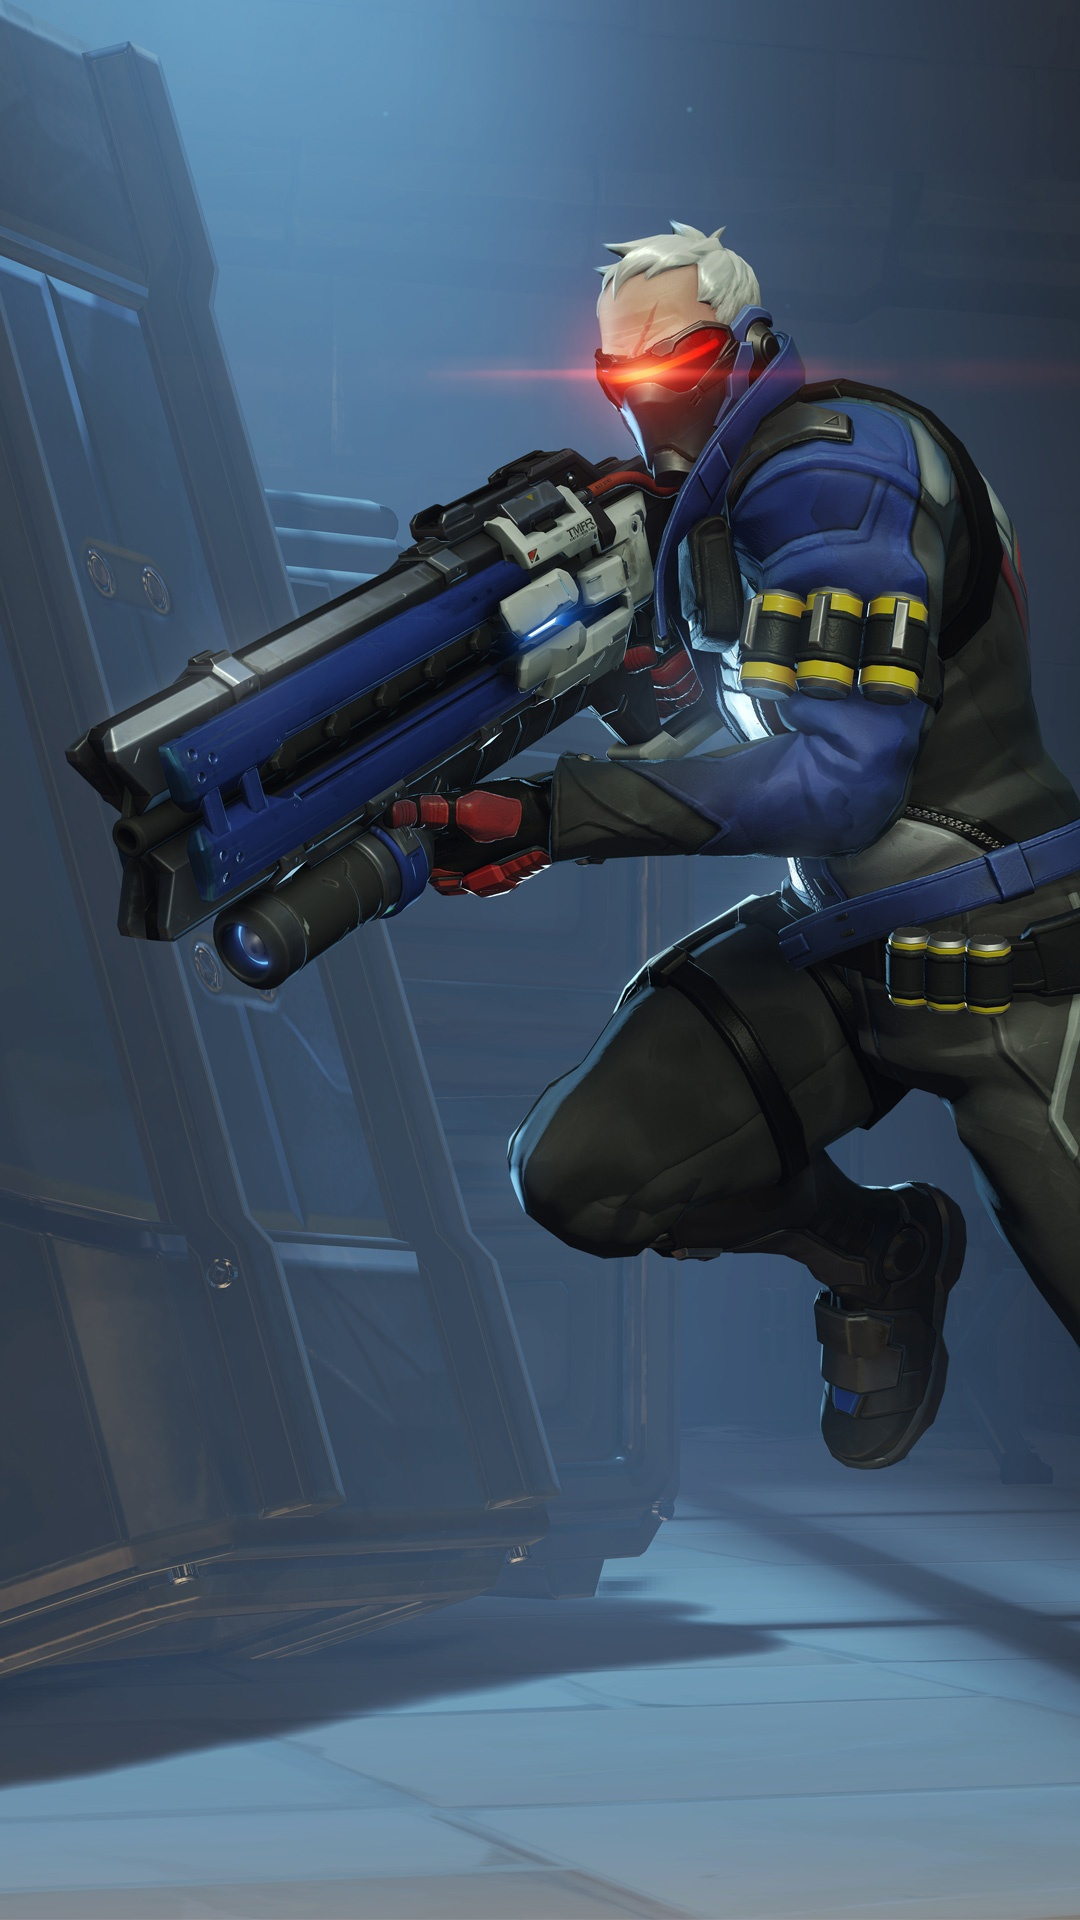 Overwatch Soldier 76 Wallpapers in jpg format for free download